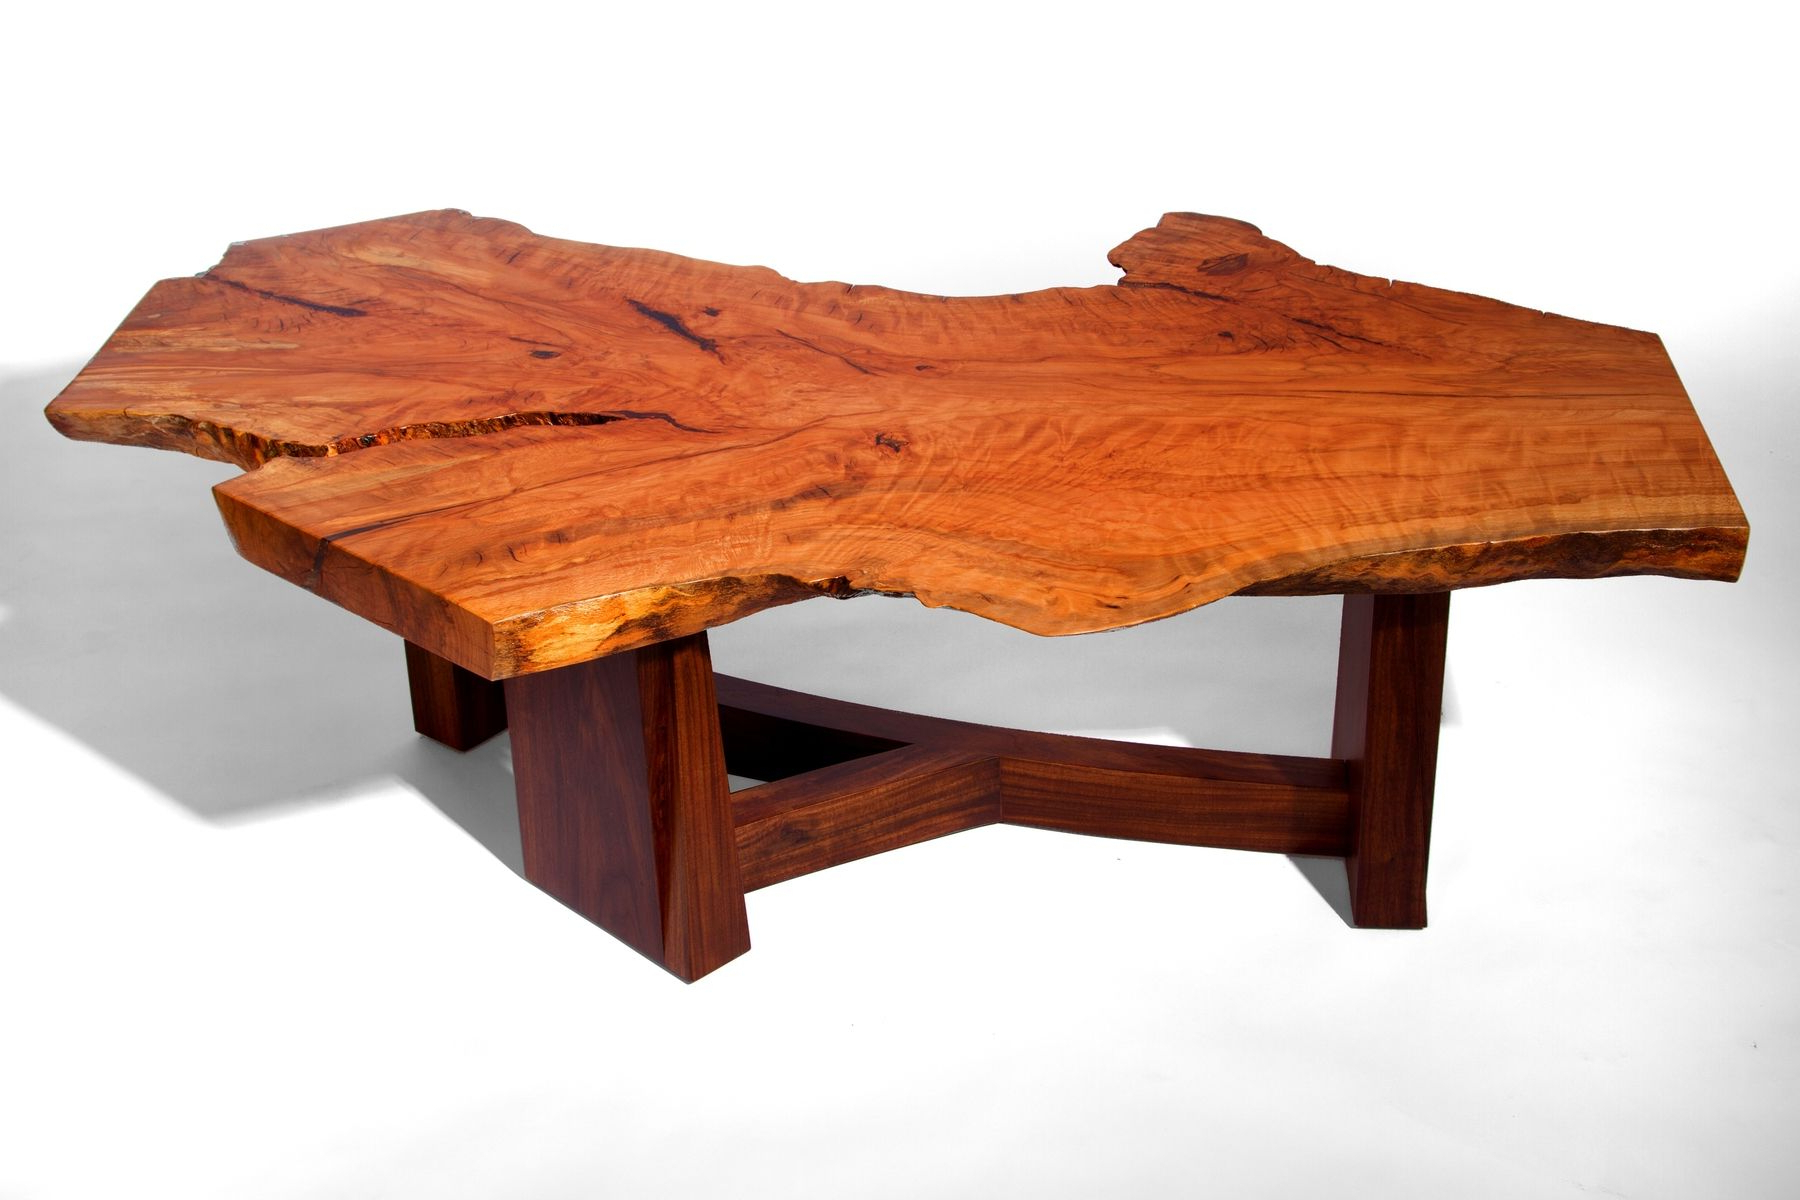 Latest 14 Live Edge Coffee Table For Sale Collections (Gallery 18 of 20)